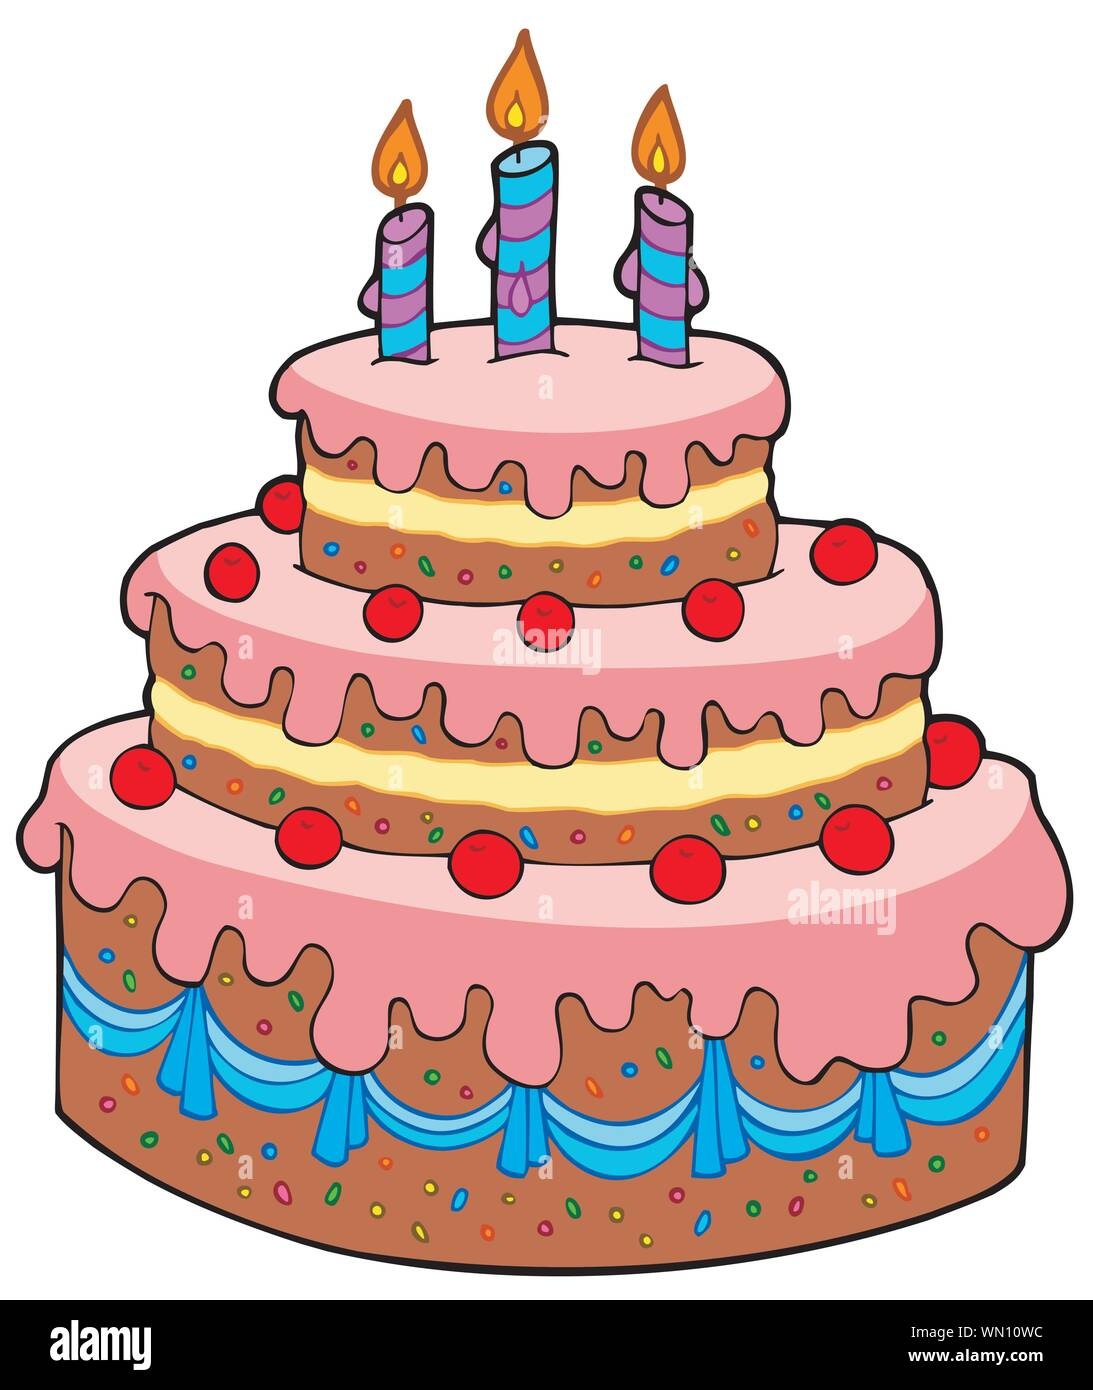 Pleasant Big Cartoon Birthday Cake Stock Vector Art Illustration Vector Personalised Birthday Cards Veneteletsinfo